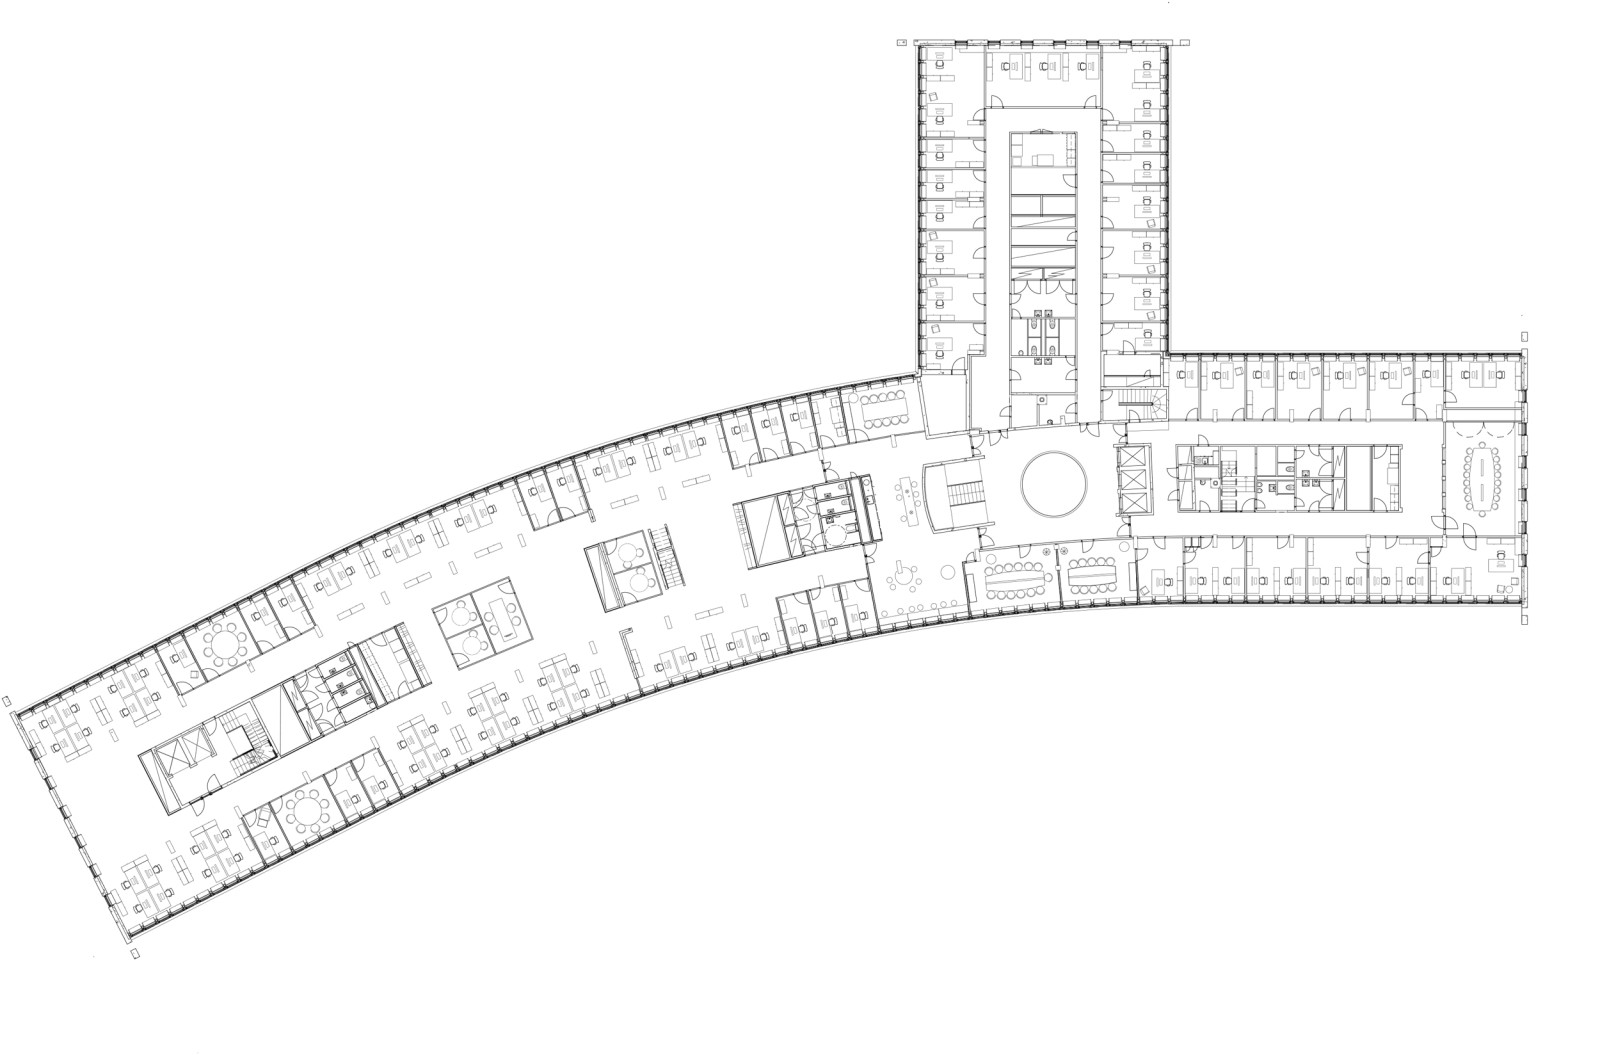 Floor plan, 6th floor